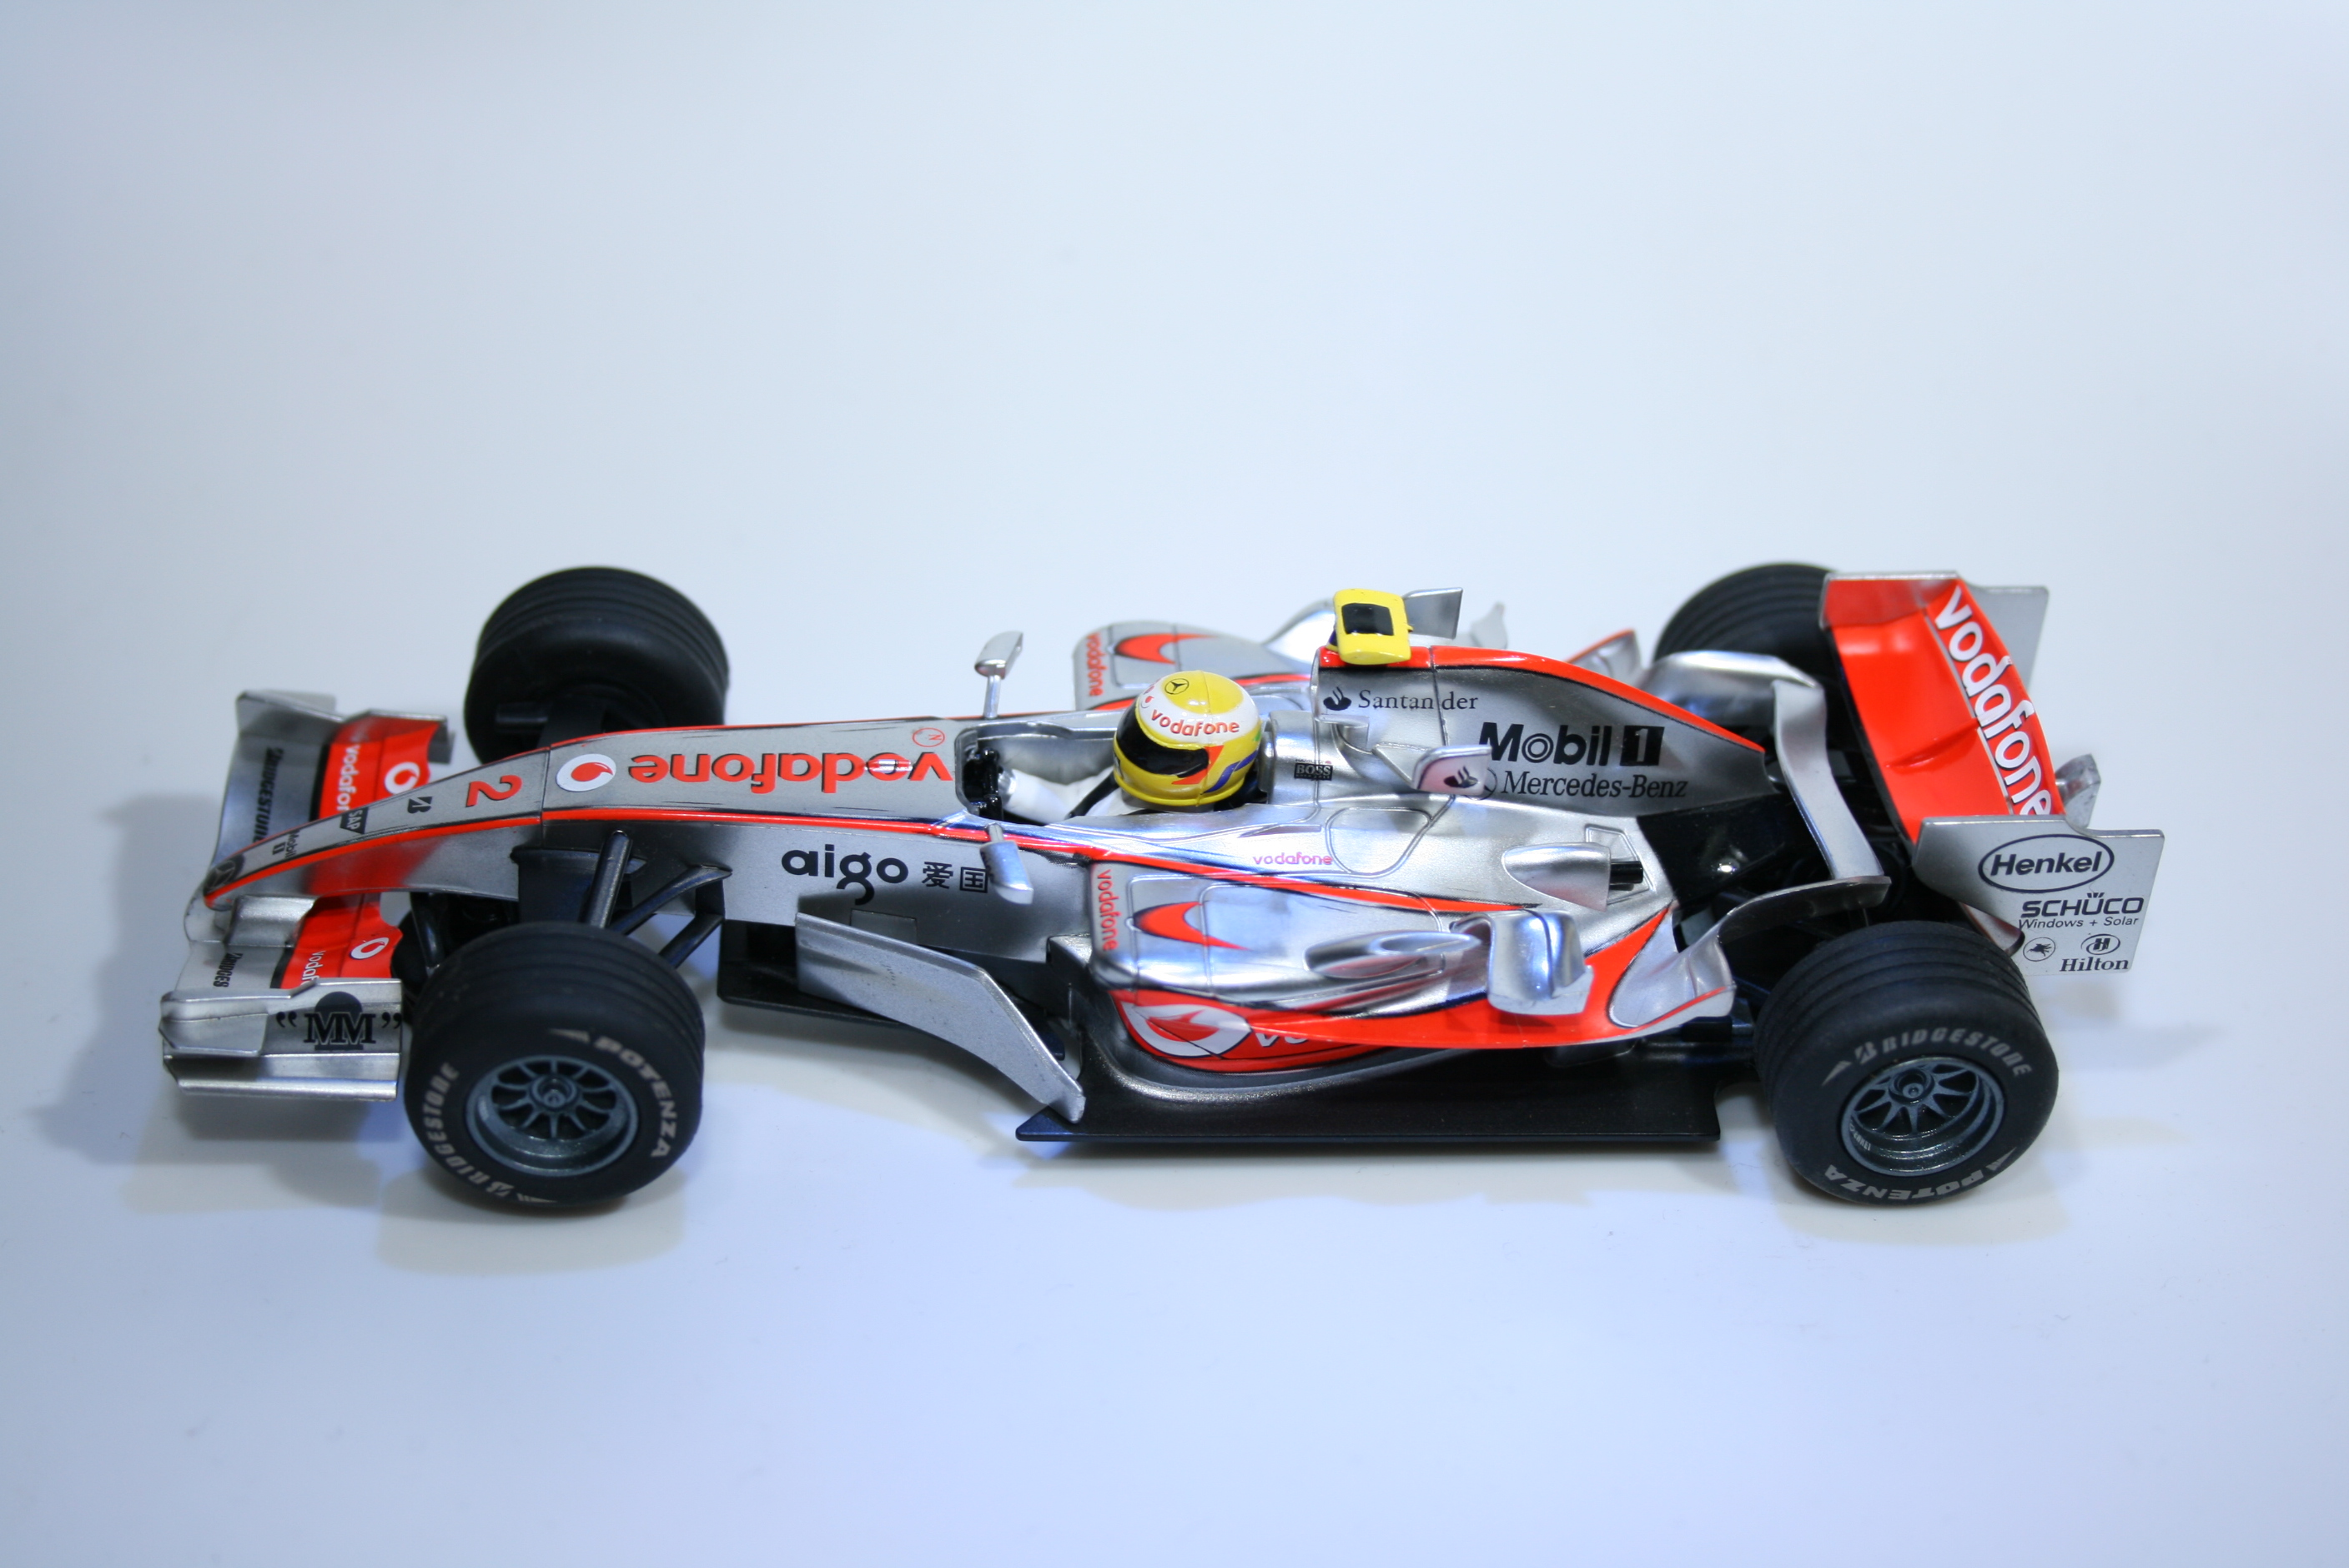 865 Mclaren MP4/21 2006 L Hamilton Scalextric C2880 2008 Boxed